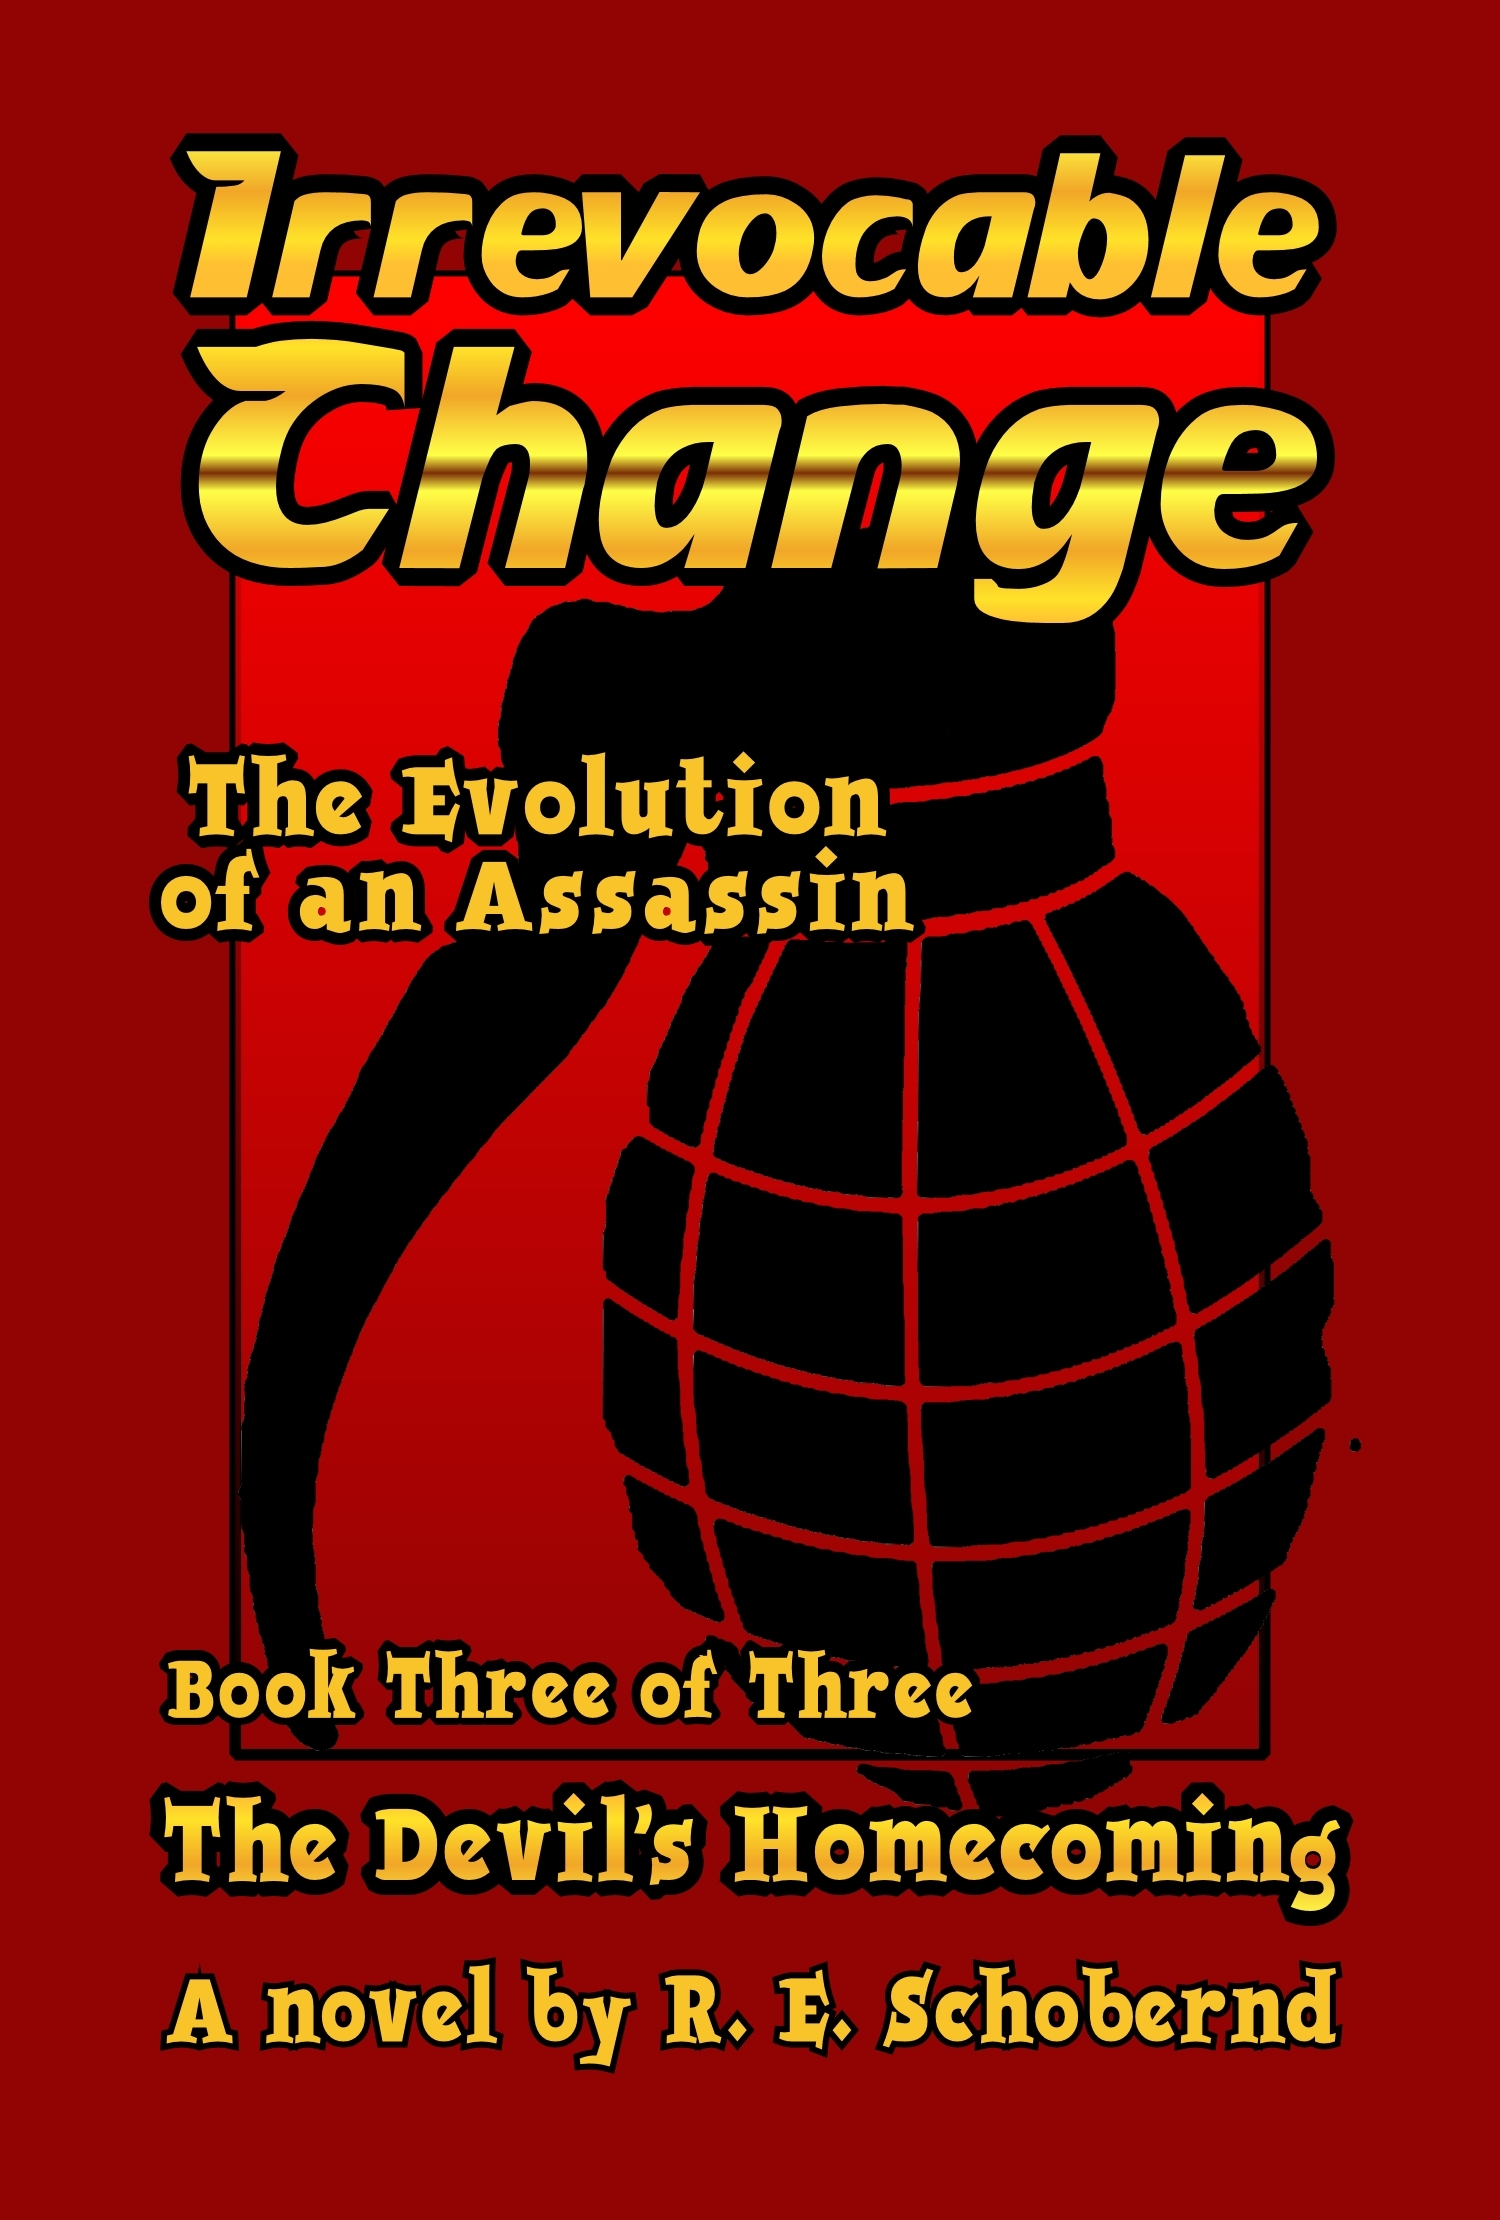 The Devil's Homecoming book three of the Irrevocable Change trilogy